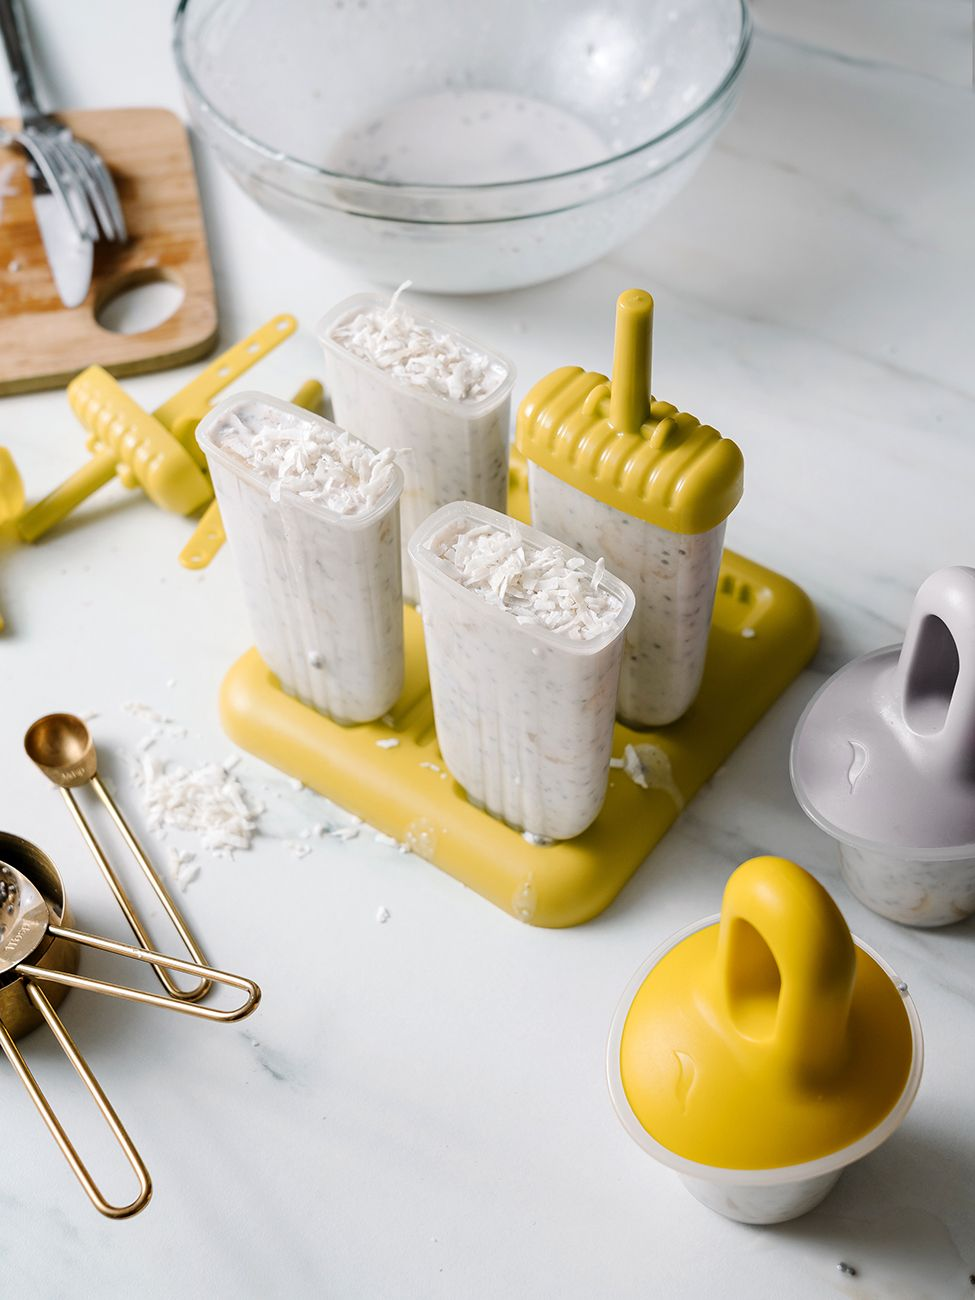 Coconut Banana Popsicles Looking for the perfect summer snack to fill you up and keep you cool? This super easy coconut banana popsicle recipe is a go-to in our house! There's no preservatives, additives, food dyes or sugar like most store bought popsicles - and did I mention they're only six ingredients that can be thrown together in less than 10 minutes?! Try it!